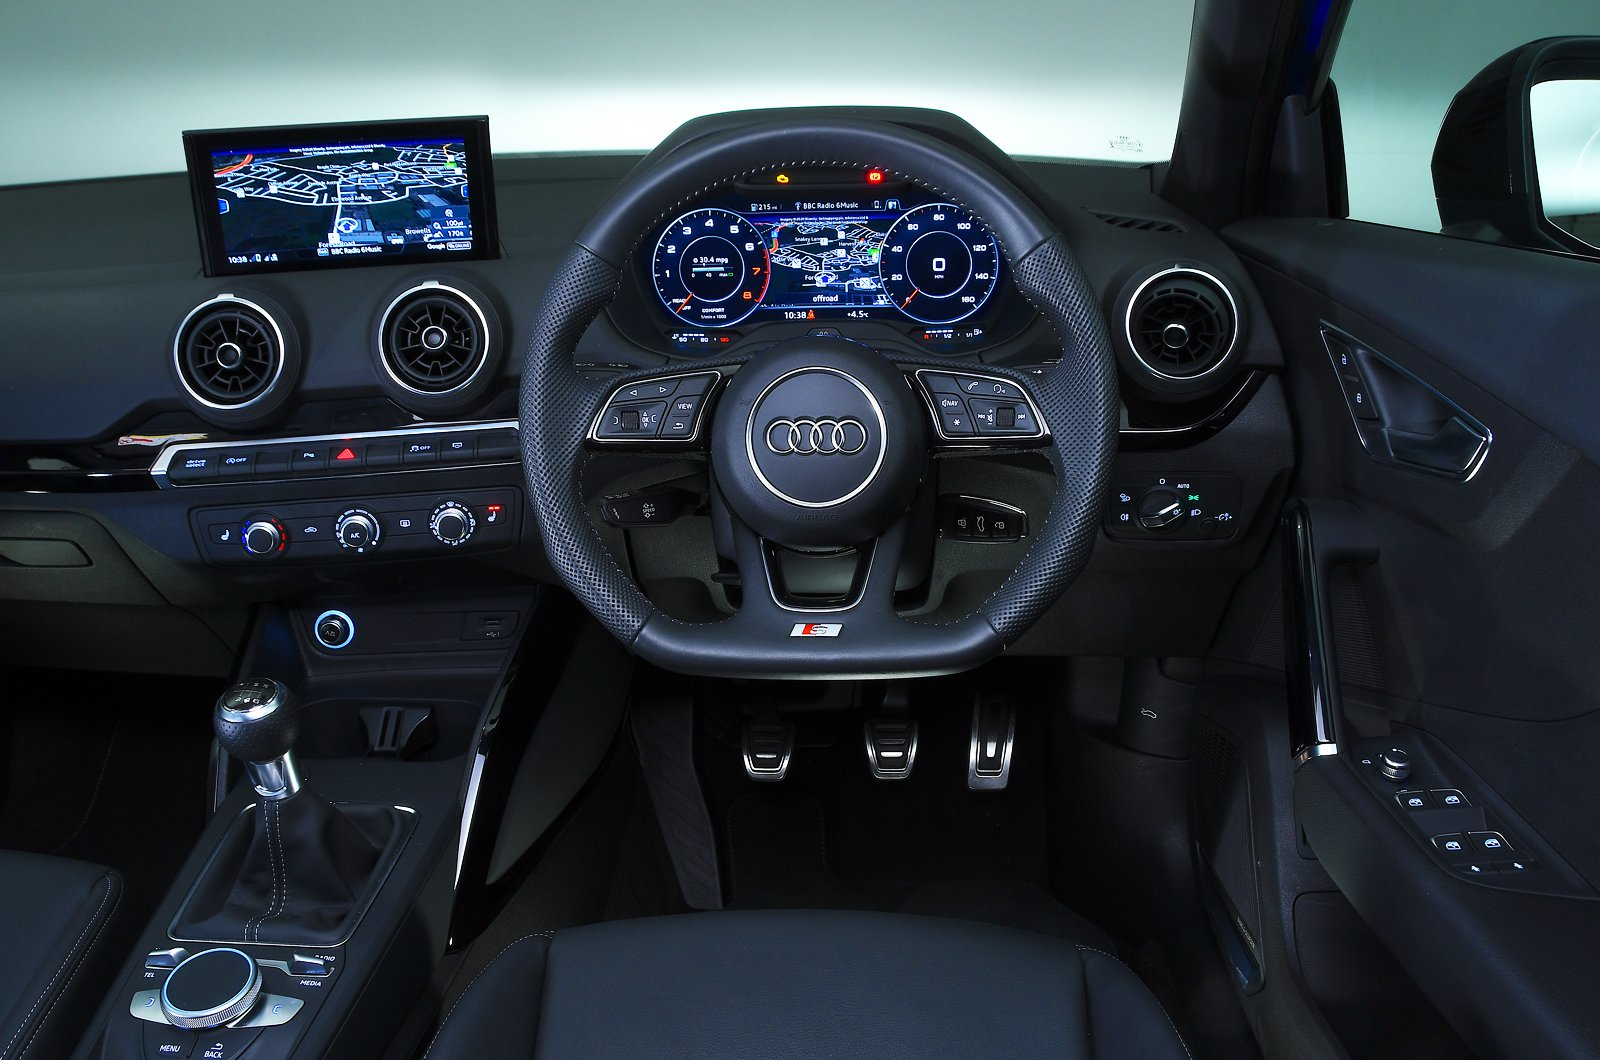 Audi Q2 dashboard - blue 19-plate car